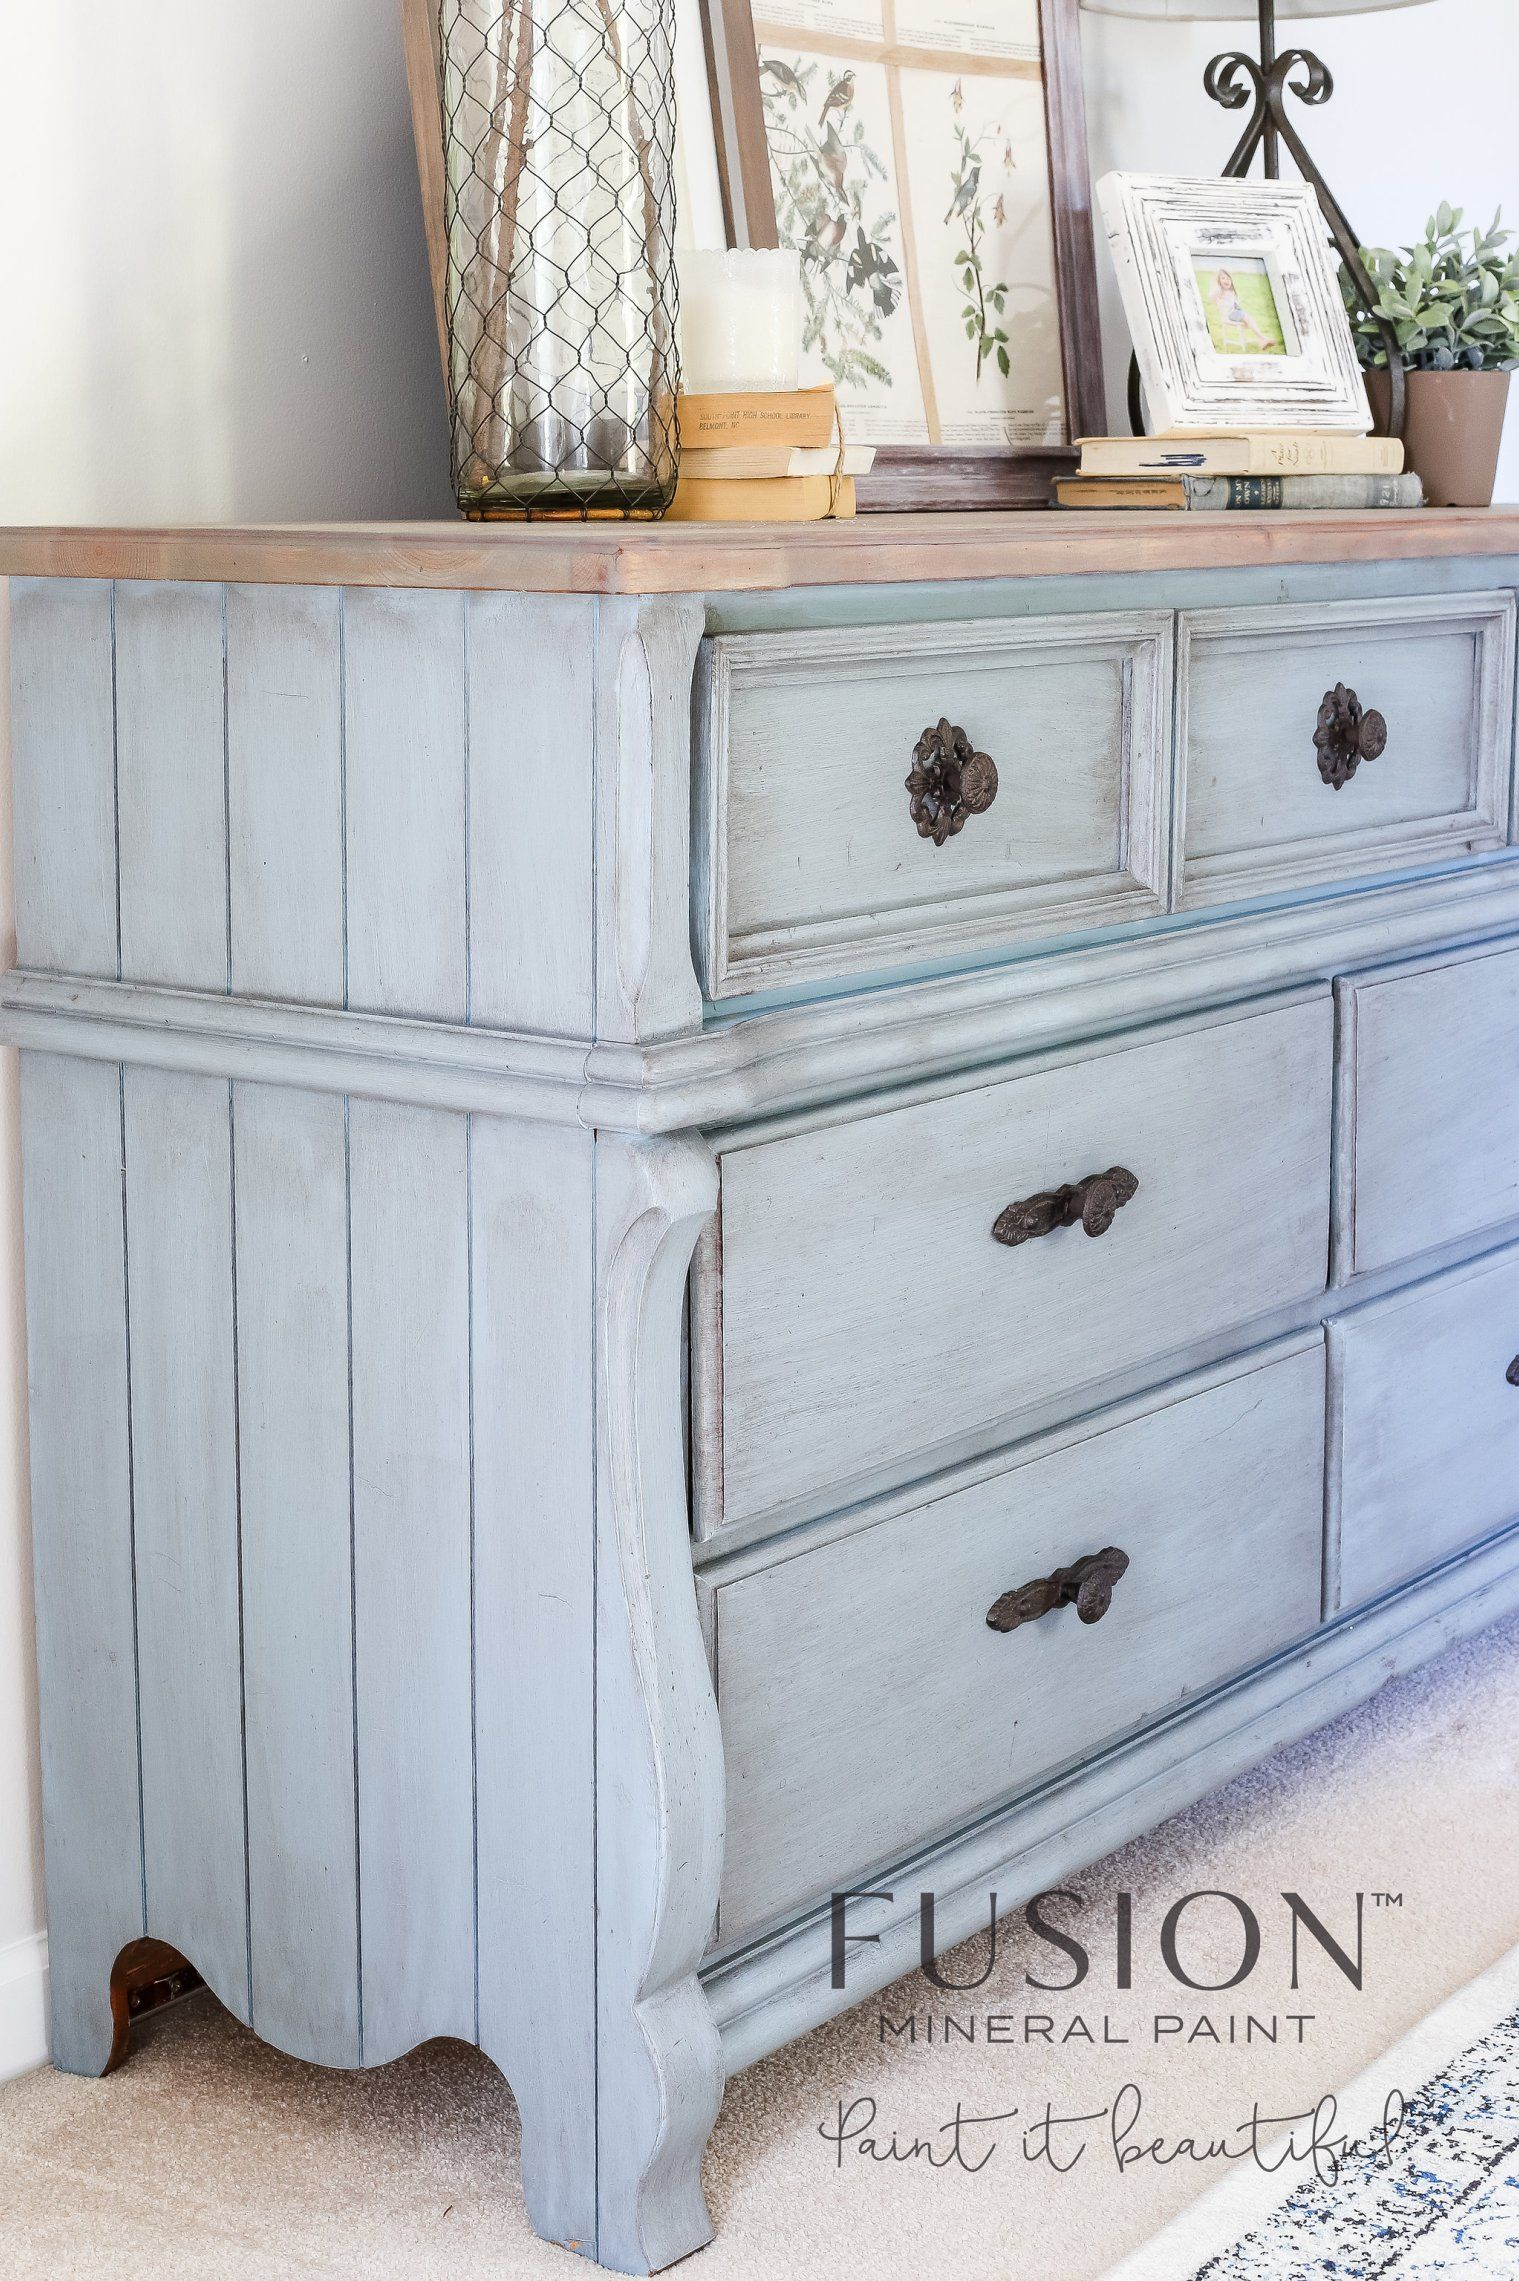 How to Use Antique Glaze Dark Wax Painted Furniture: Which one should you  use? - When And How To Use Antique Glaze Or Dark Wax On Your Painted